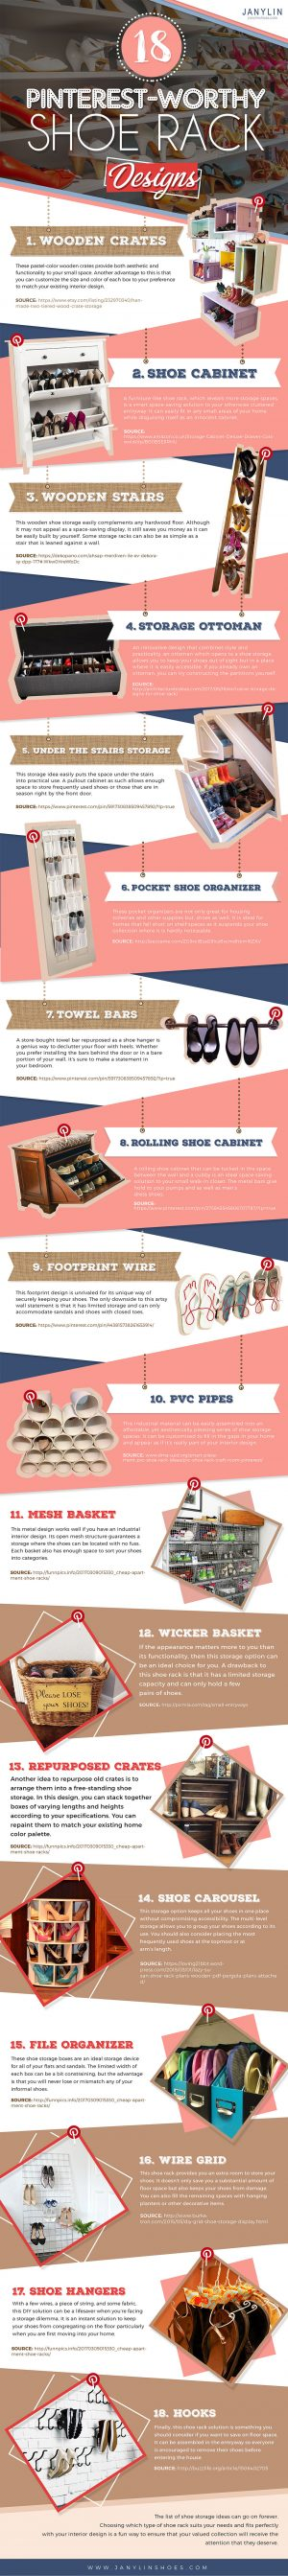 18 Pinterest-Worthy Shoe Rack Designs